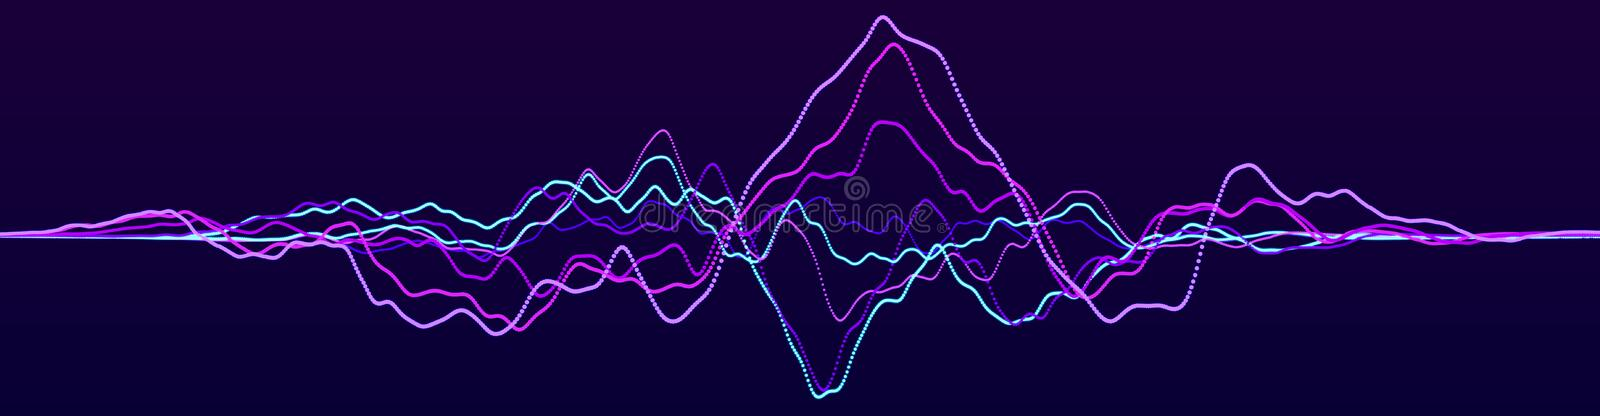 Abstract background with dynamic waves. Sound wave element. Technology equalizer for music. 3d rendering vector illustration